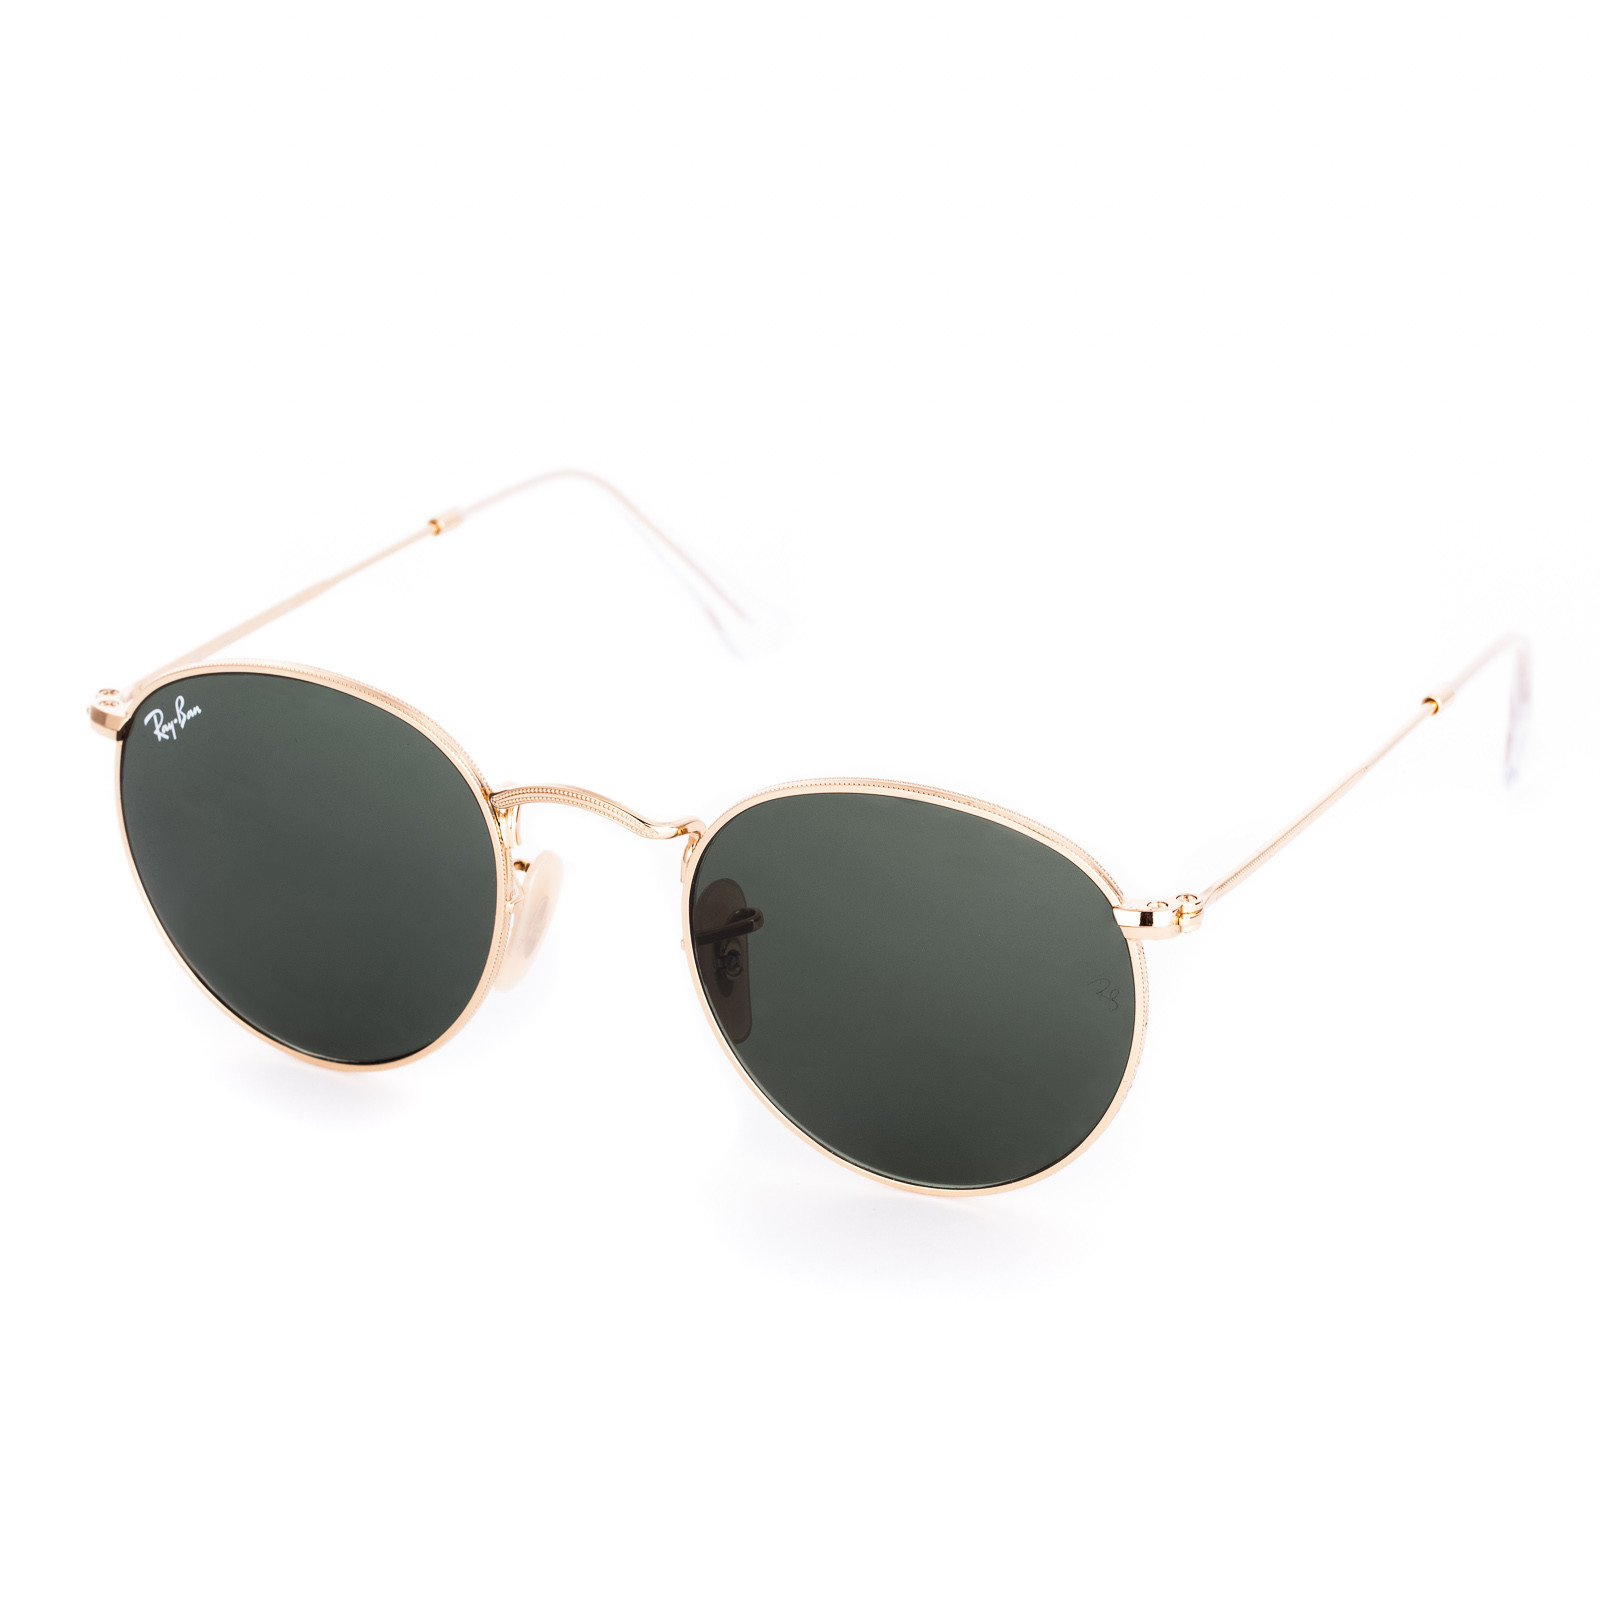 9379ca21a03328 Ray-Ban Round Metal Zonnebril RB3447 47 001